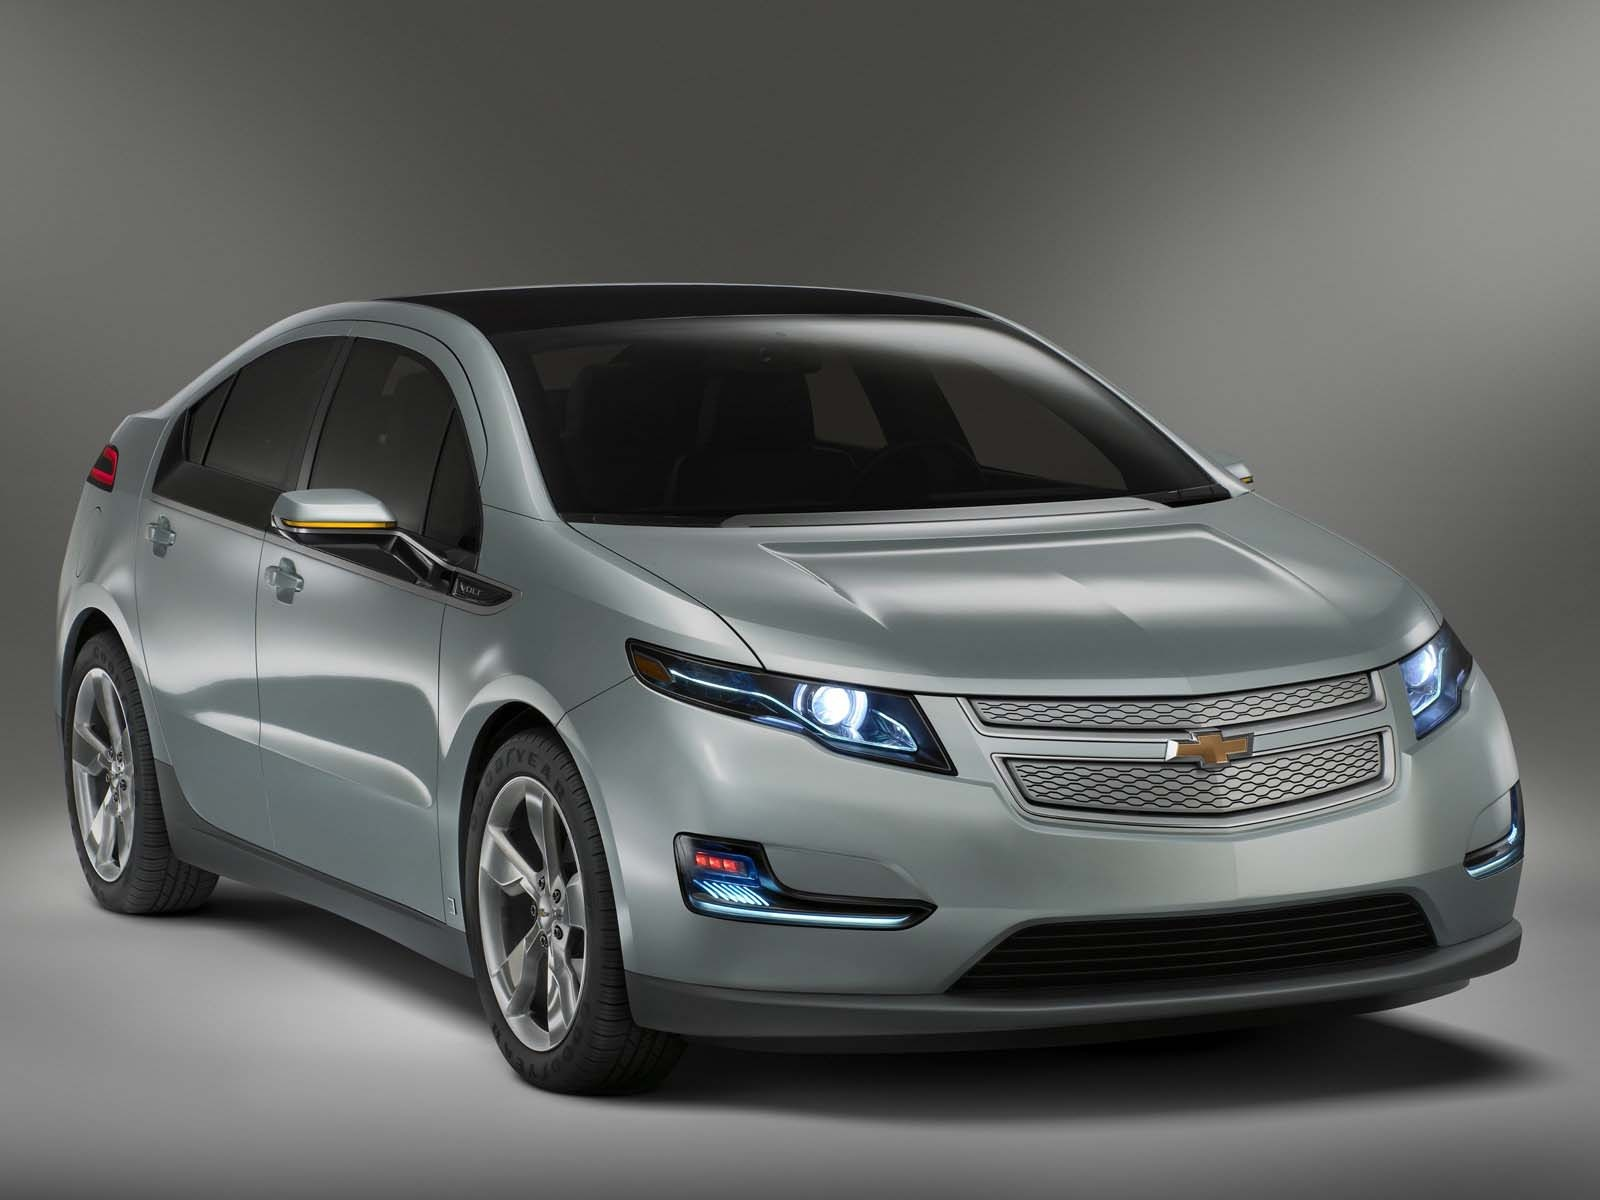 Chevrolet Volt 2012 photo - 2